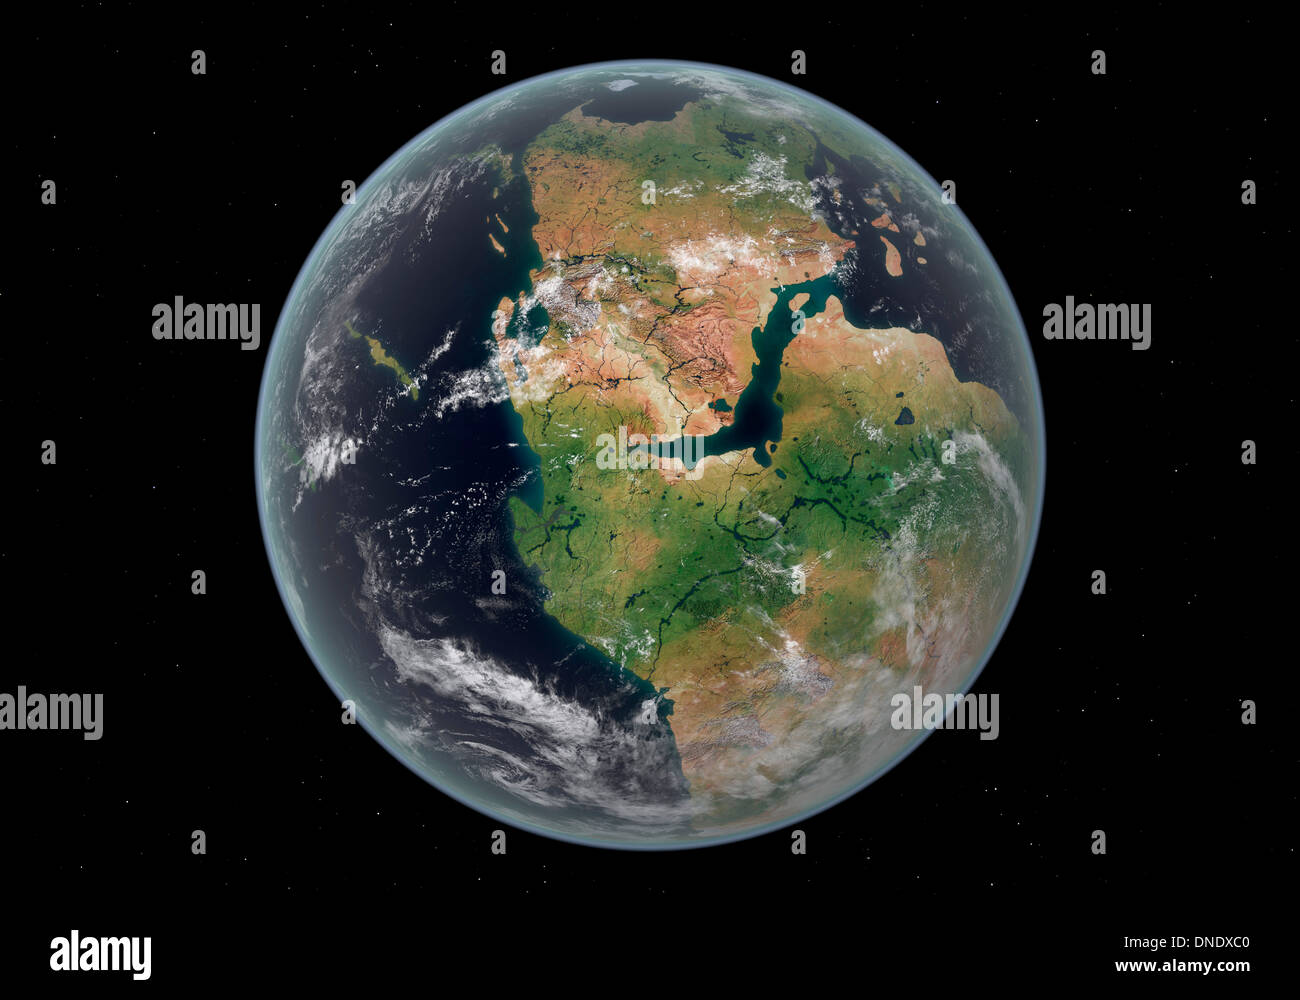 Western hemisphere of the Earth during the Early Jurassic period. - Stock Image